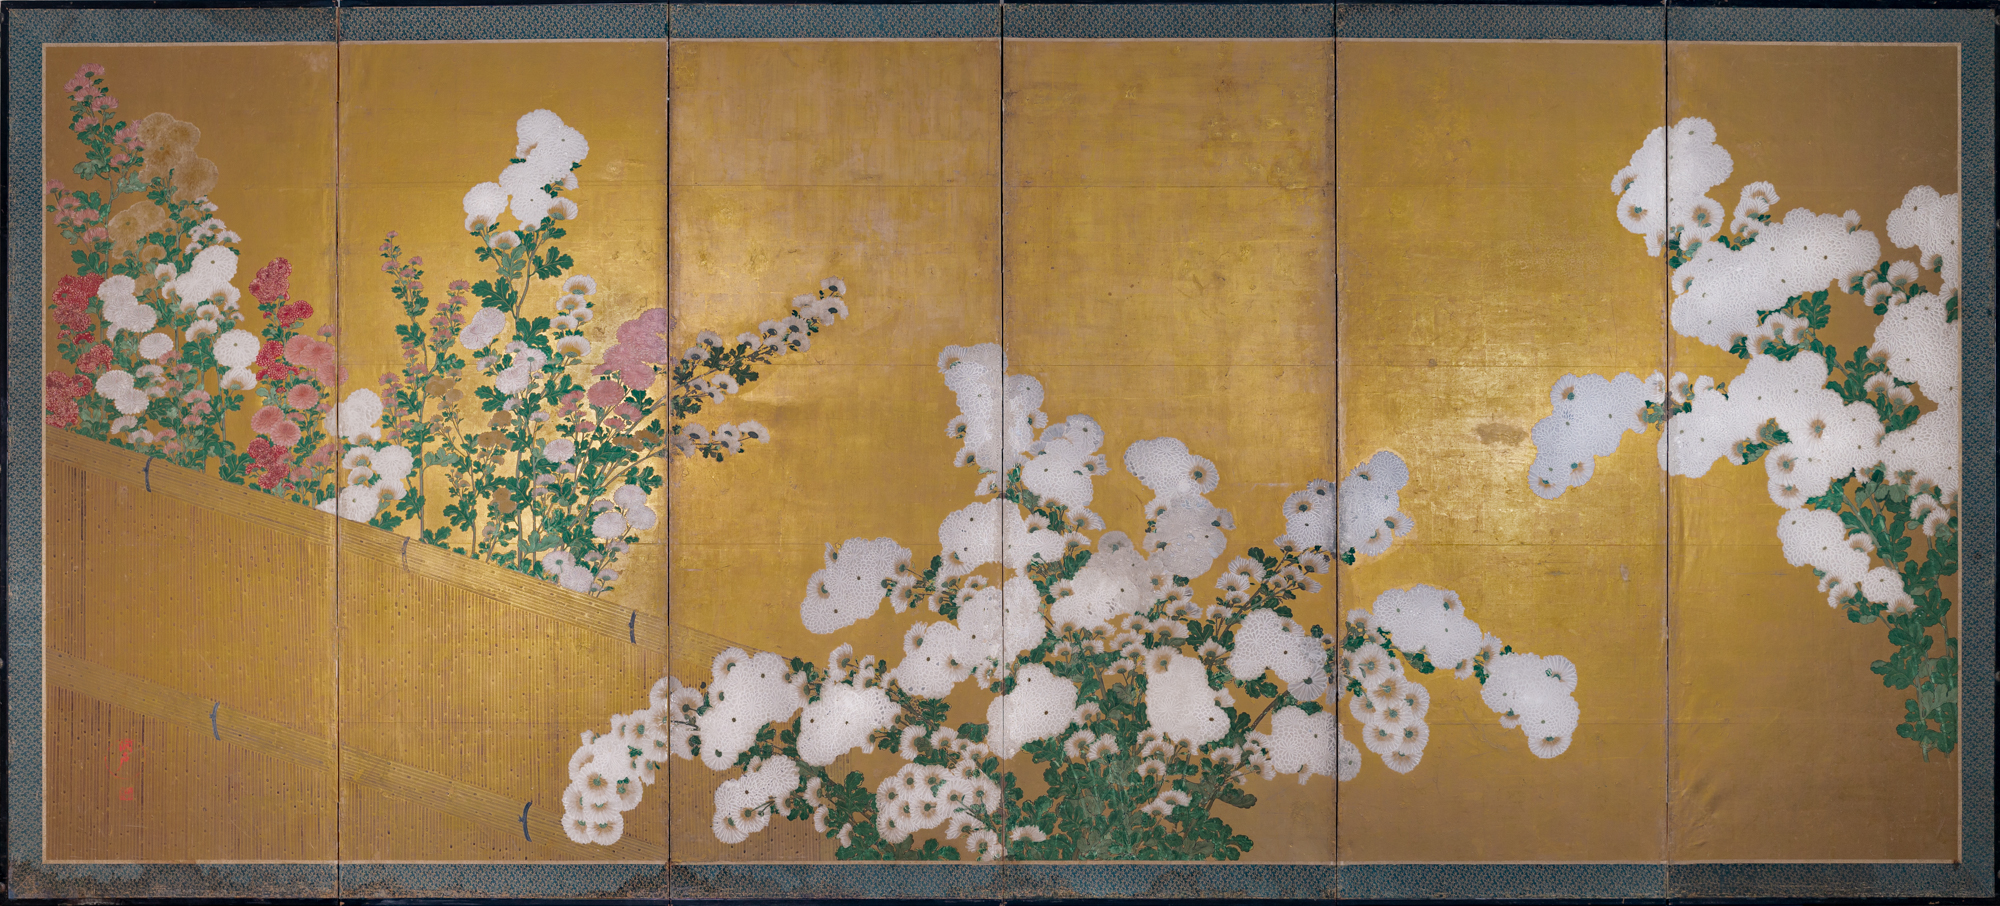 Japanese Six Panel Screen: By Garden's Edge